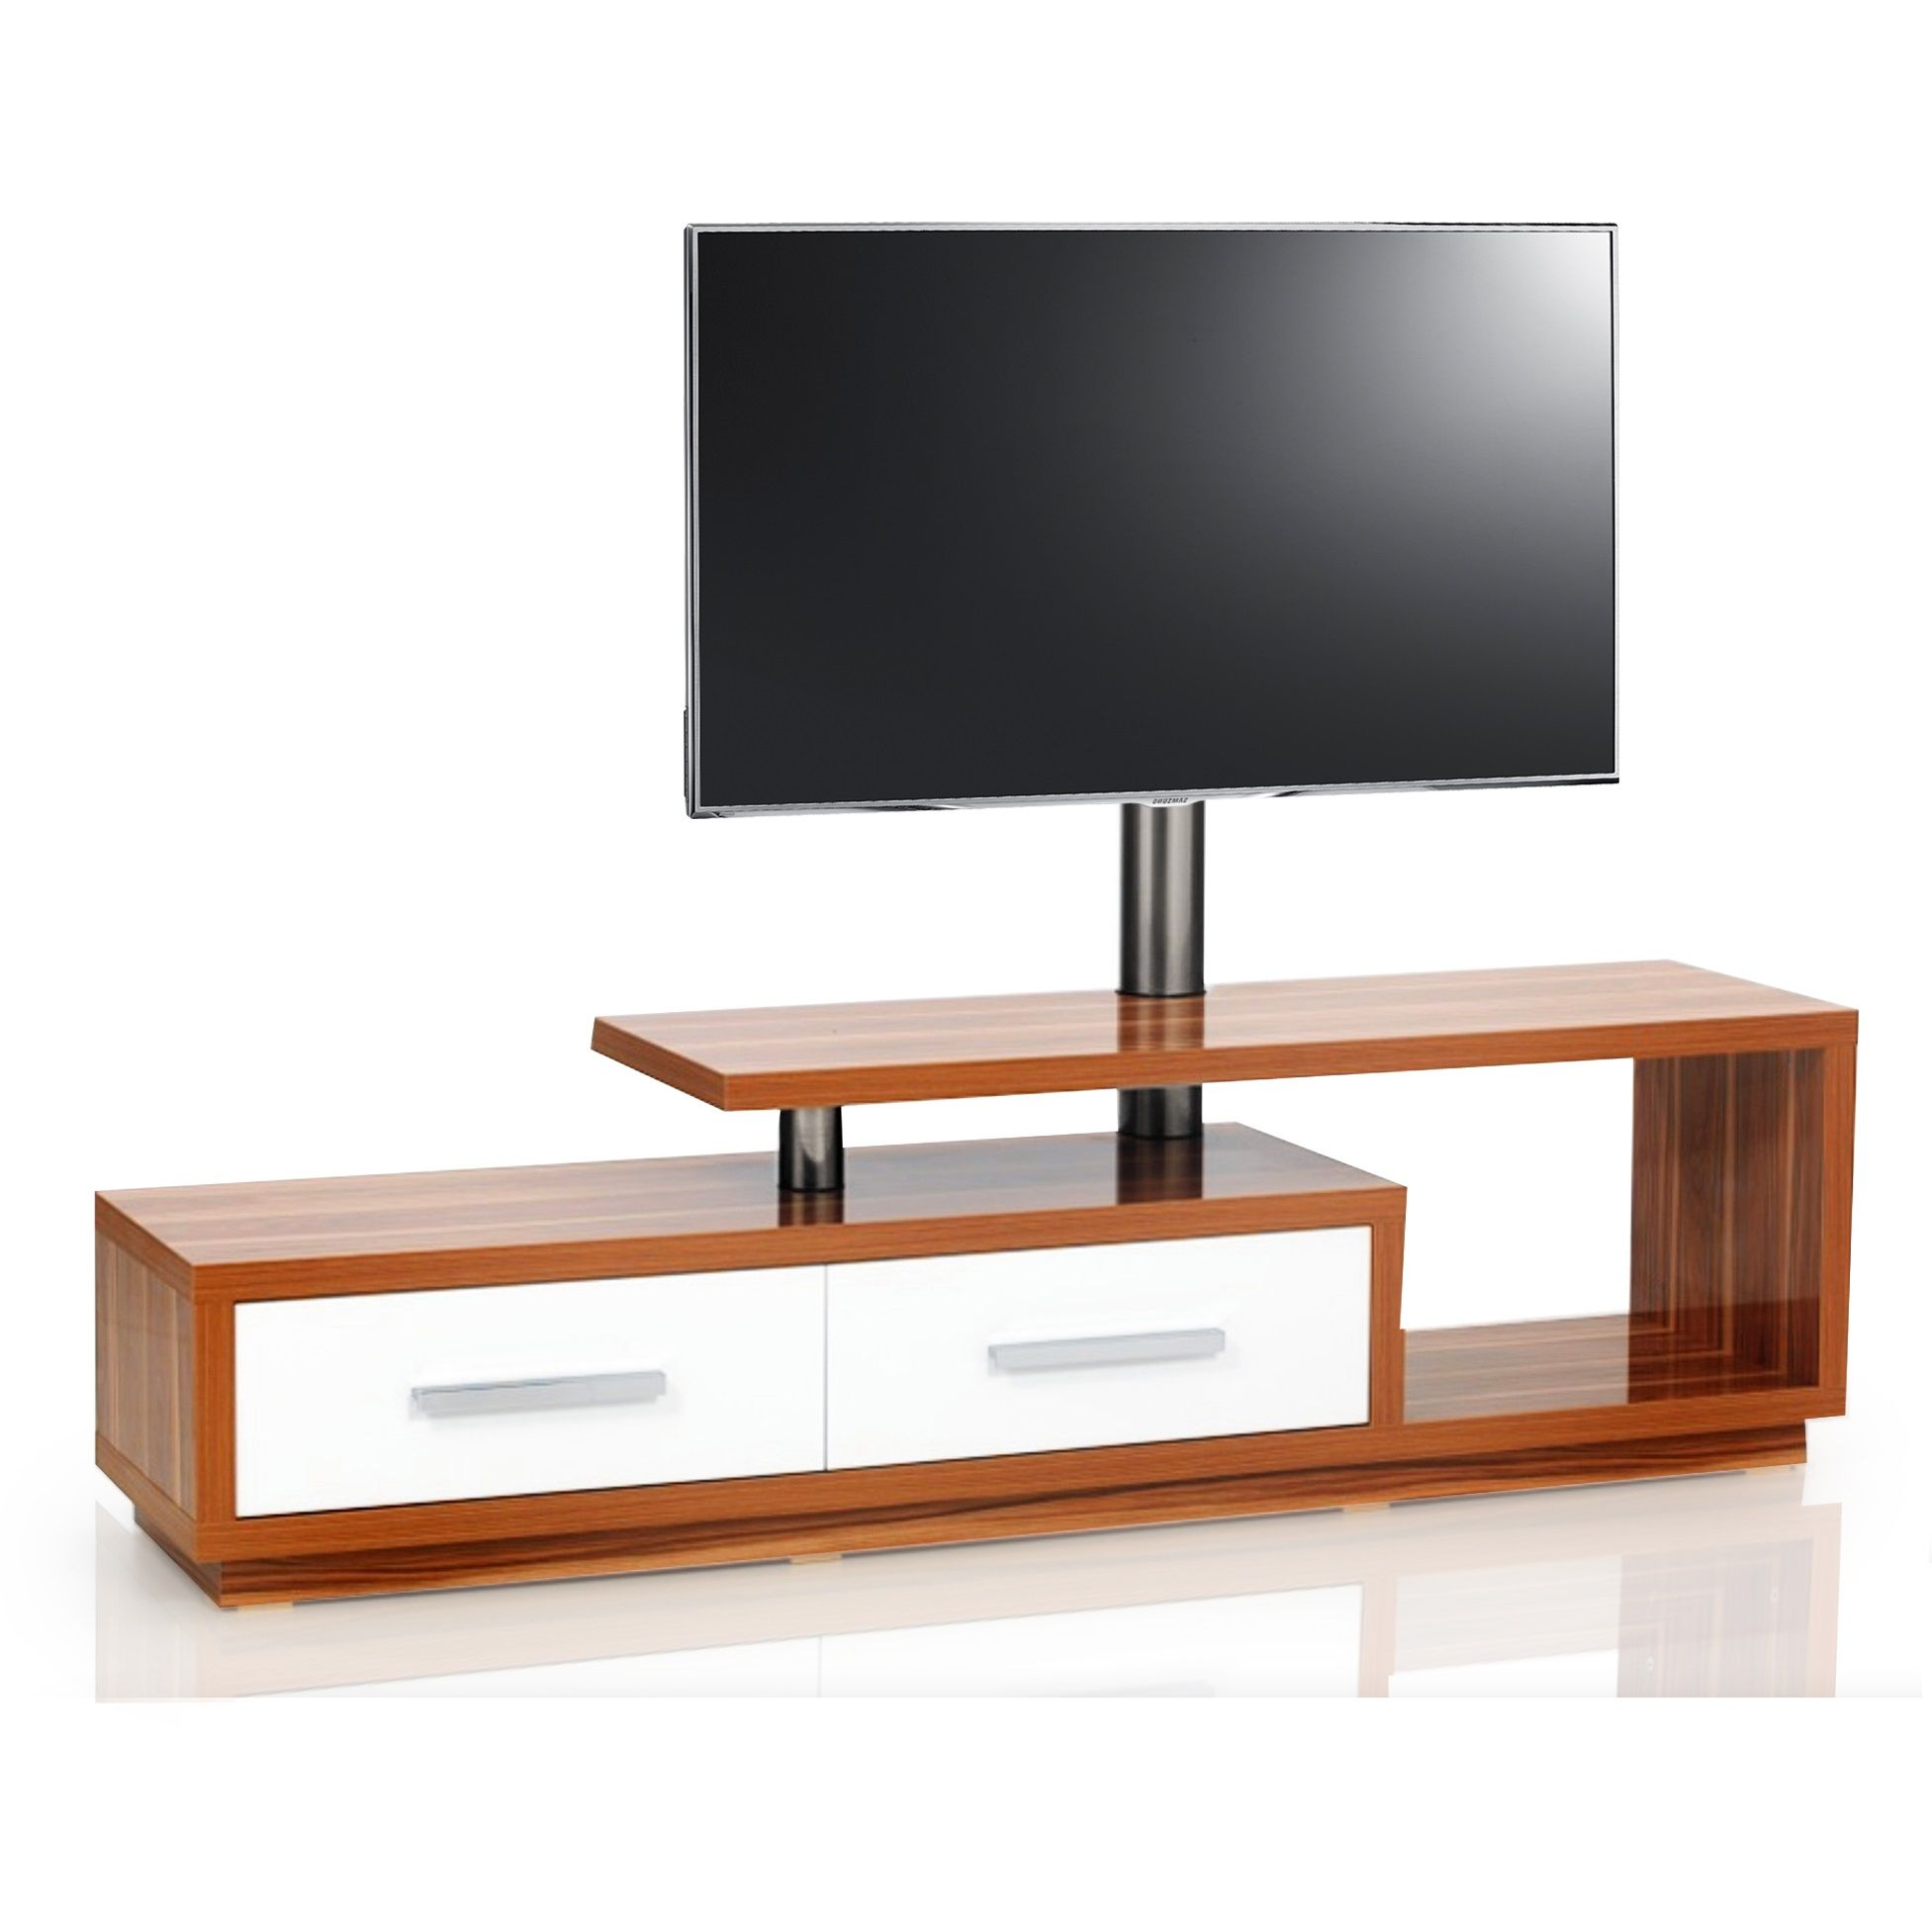 Meubles Pour Tv Plasma - Stunning Tables De Television Contemporary Joshkrajcik Us [mjhdah]https://eq3.com/binaries/content/gallery/eq3_products_images/products/living/media–storage/media-storage/boom-plasma-unit/boom_plasma_unit_walnut_front_close_01.jpg